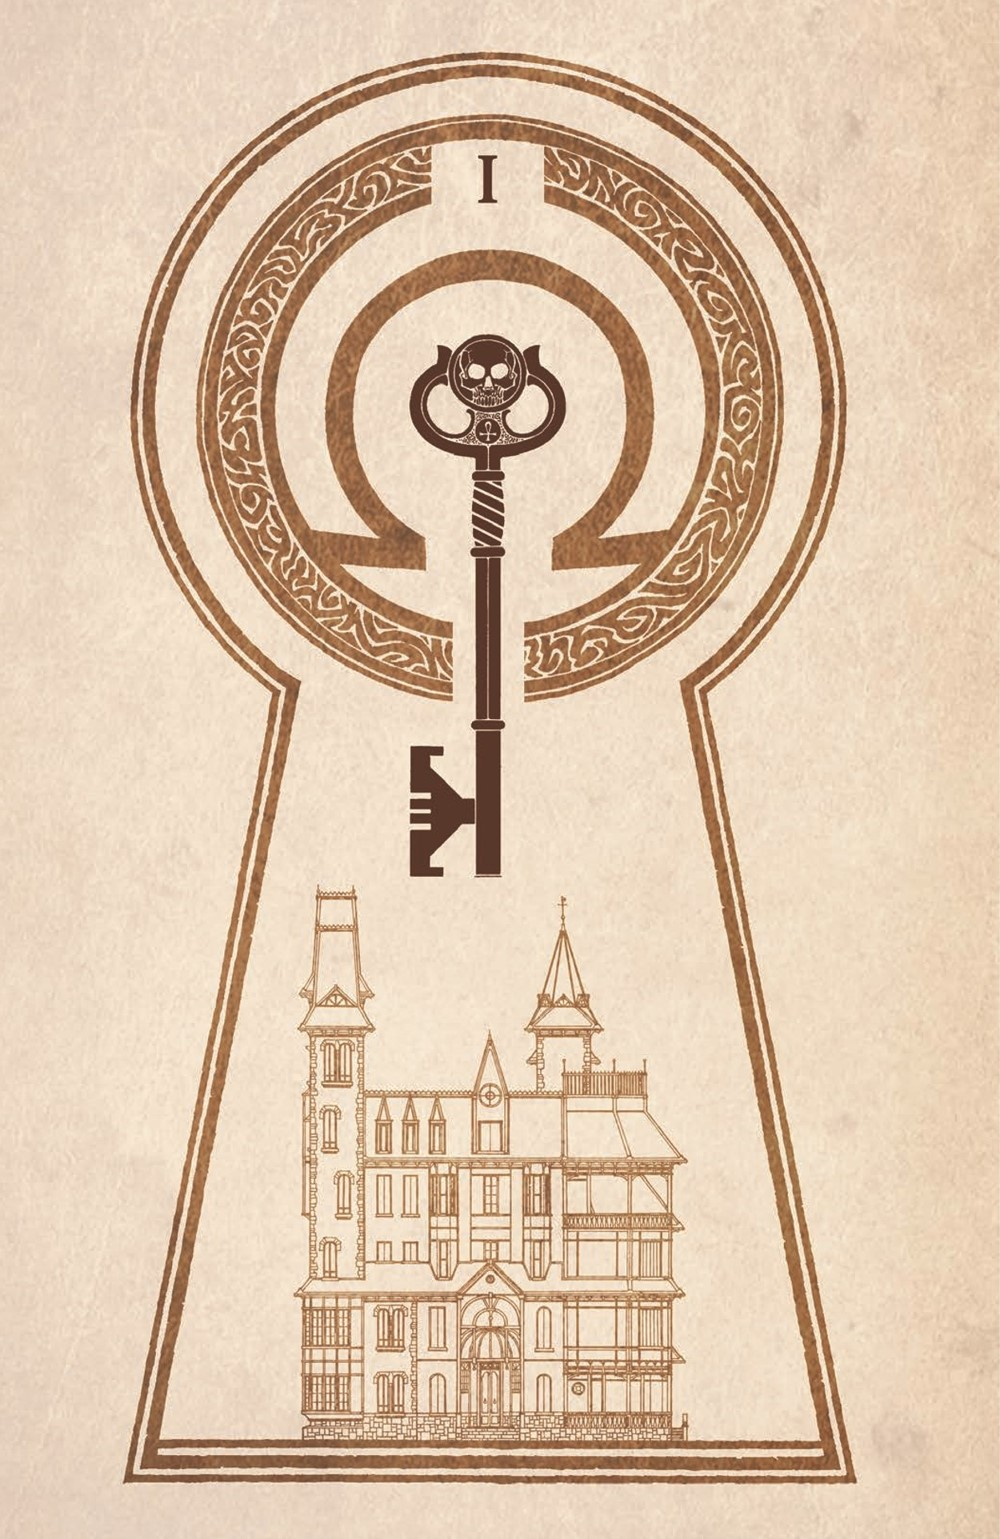 LnK-KeyhouseCompendium-pr-3 ComicList Previews: LOCKE AND KEY KEYHOUSE COMPENDIUM HARDCOVER COLLECTION